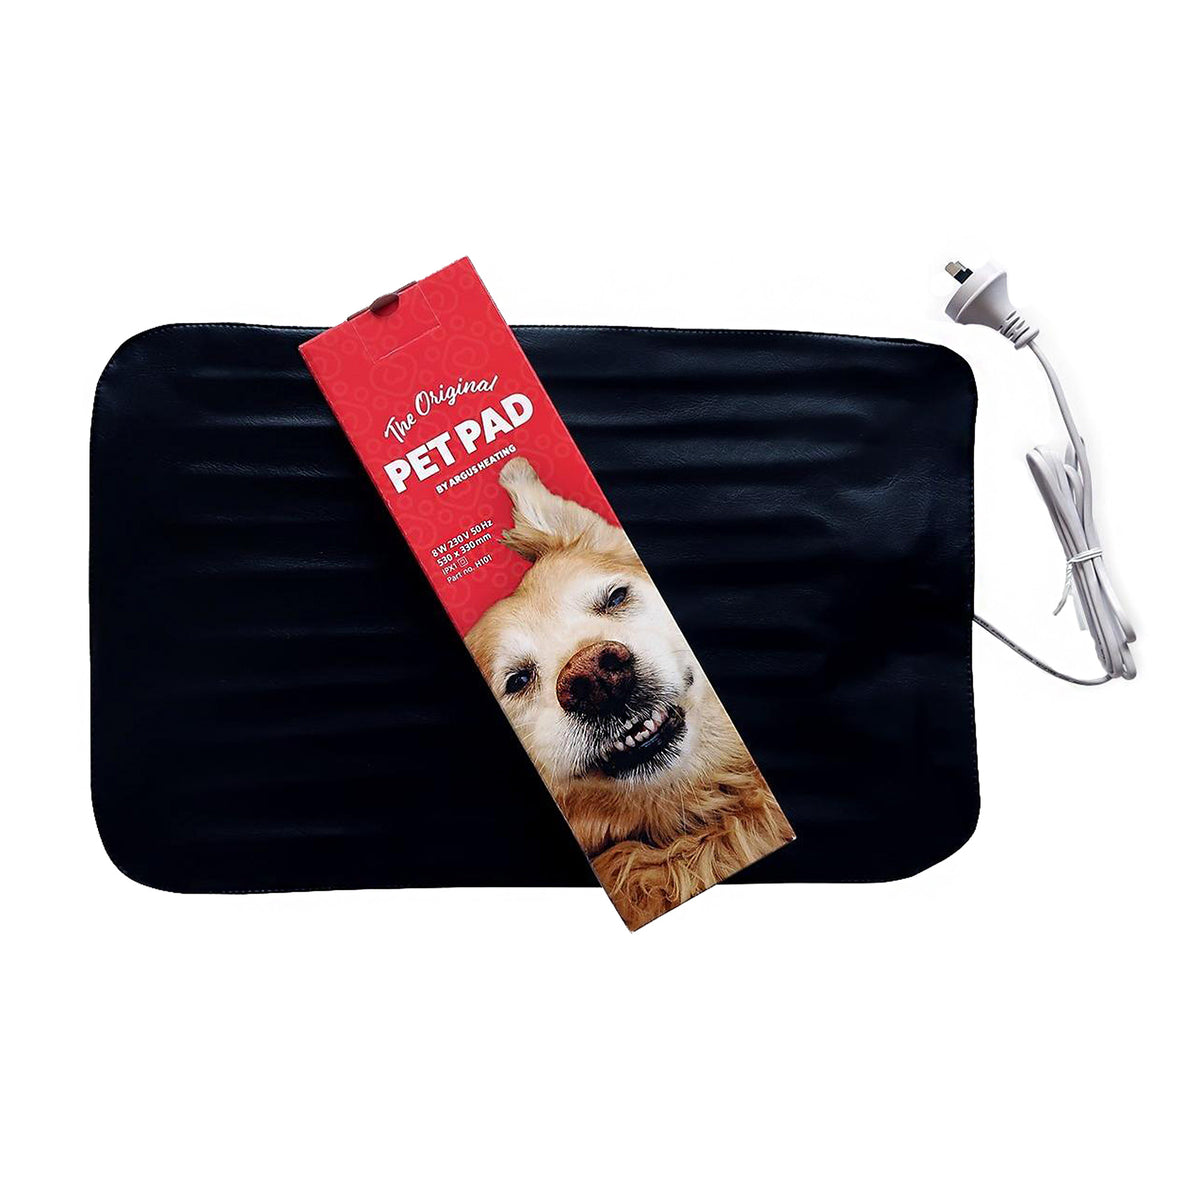 Argus Original Heated Pet Pad